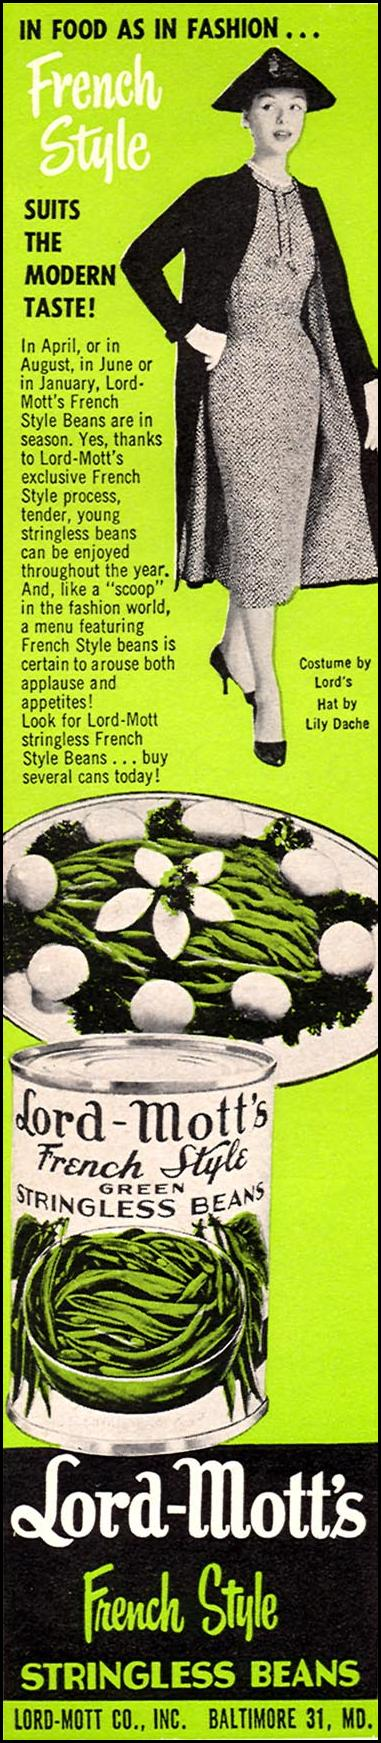 LORD-MOTT'S FRENCH STYLE STRINGLESS BEANS WOMAN'S DAY 04/01/1956 p. 126